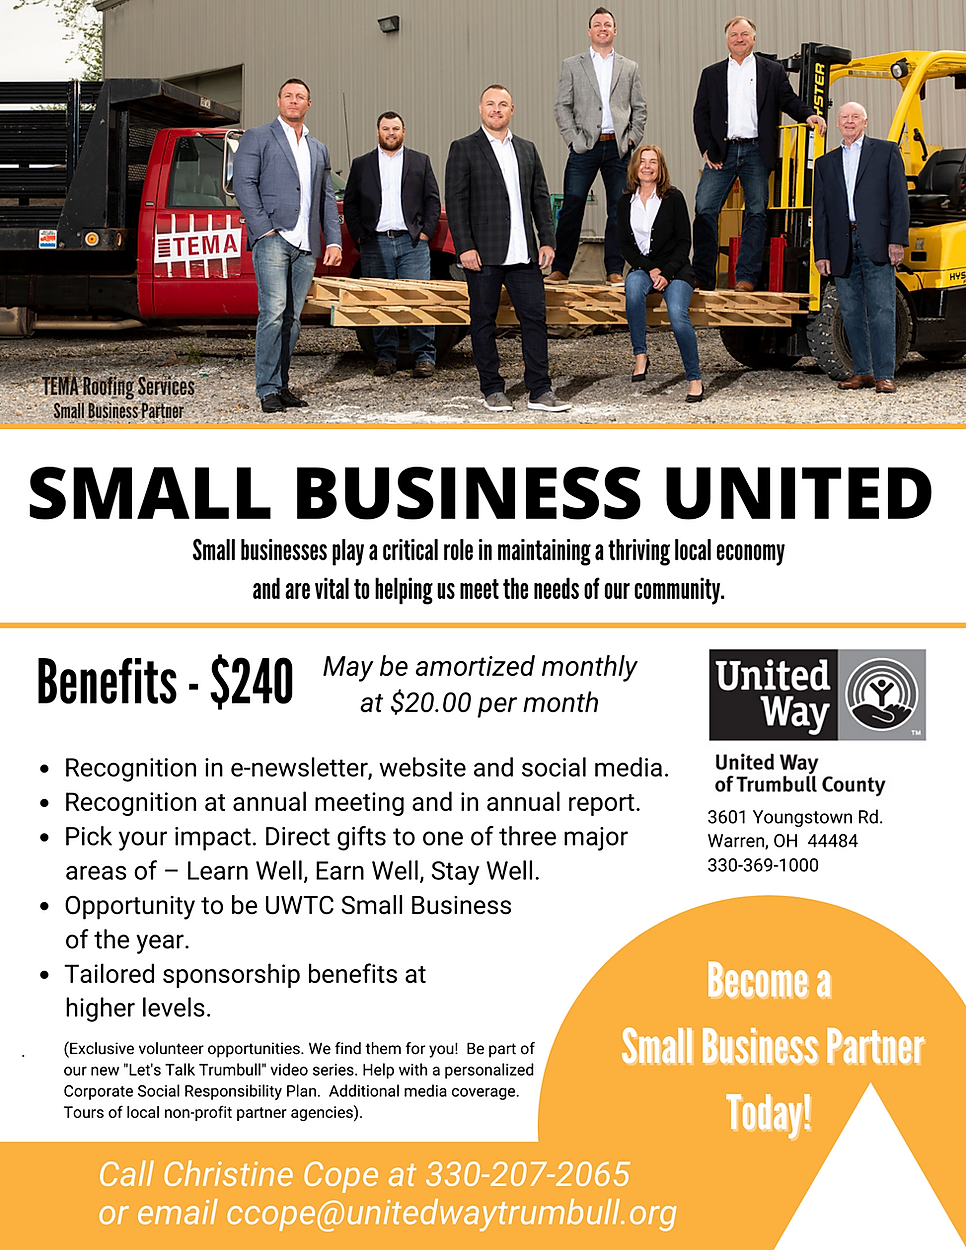 SMALL BUSINESS UNITED 12-21-2020.png